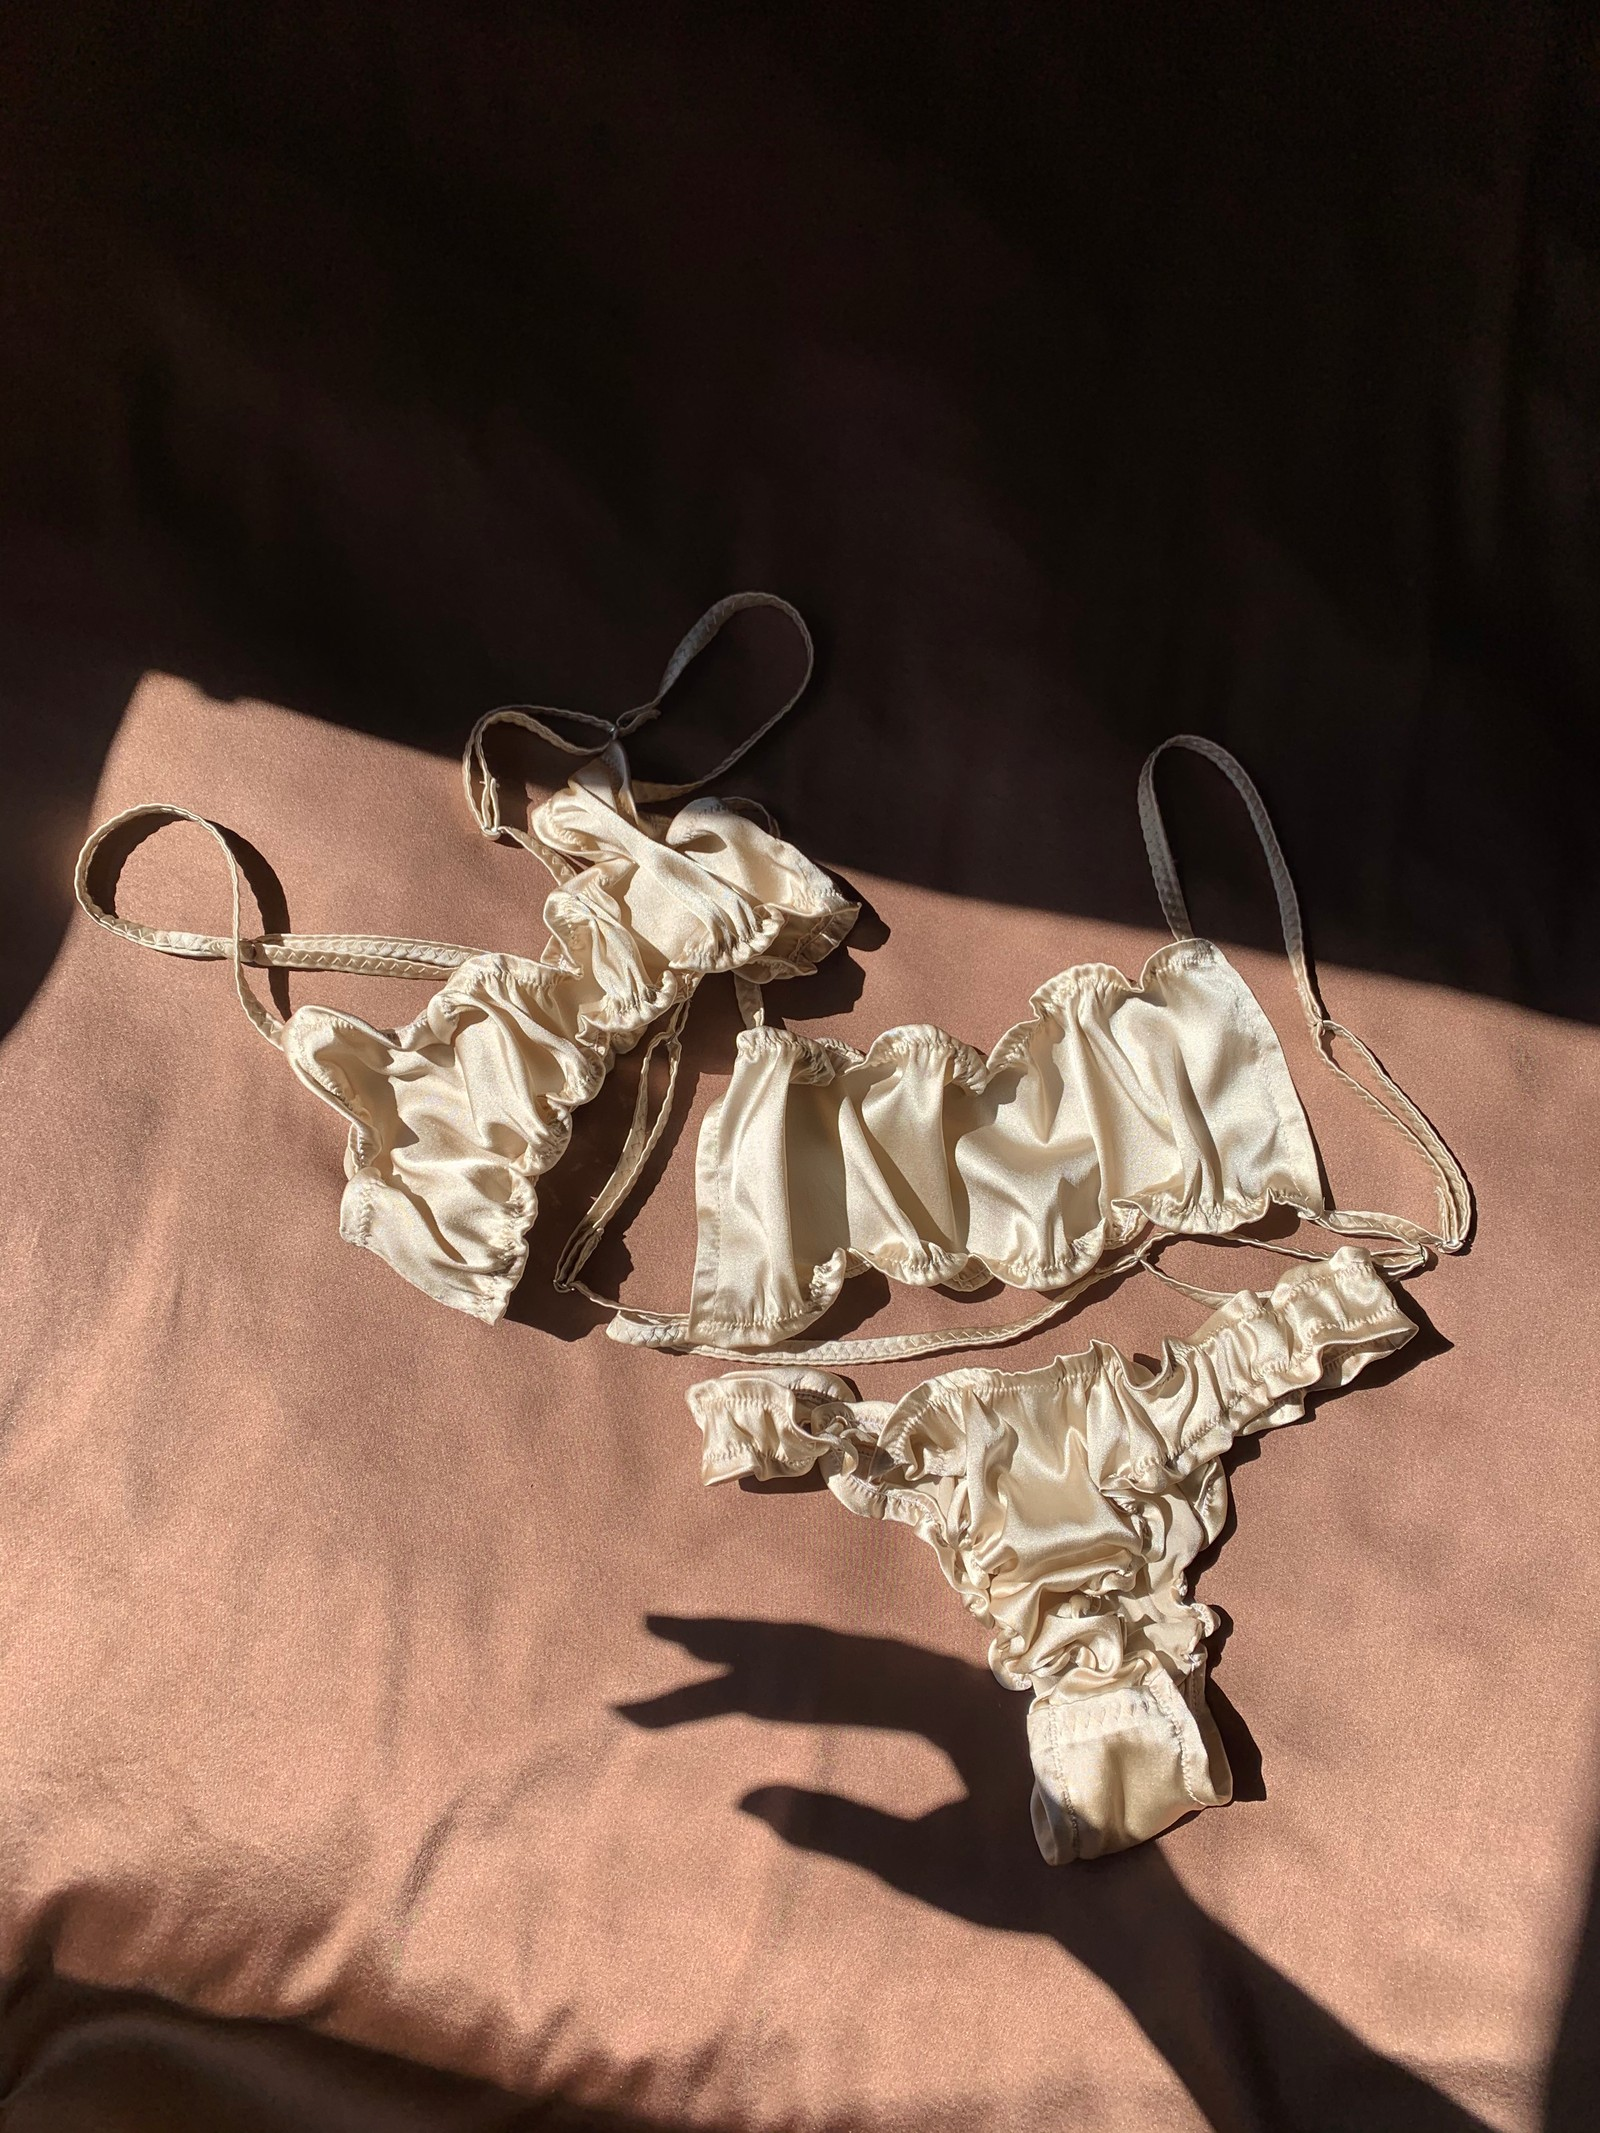 Lingerie Underwear Silk Soft and Wet Undies Softandwet Panties Bra Intimates Instagram Alice Brnra